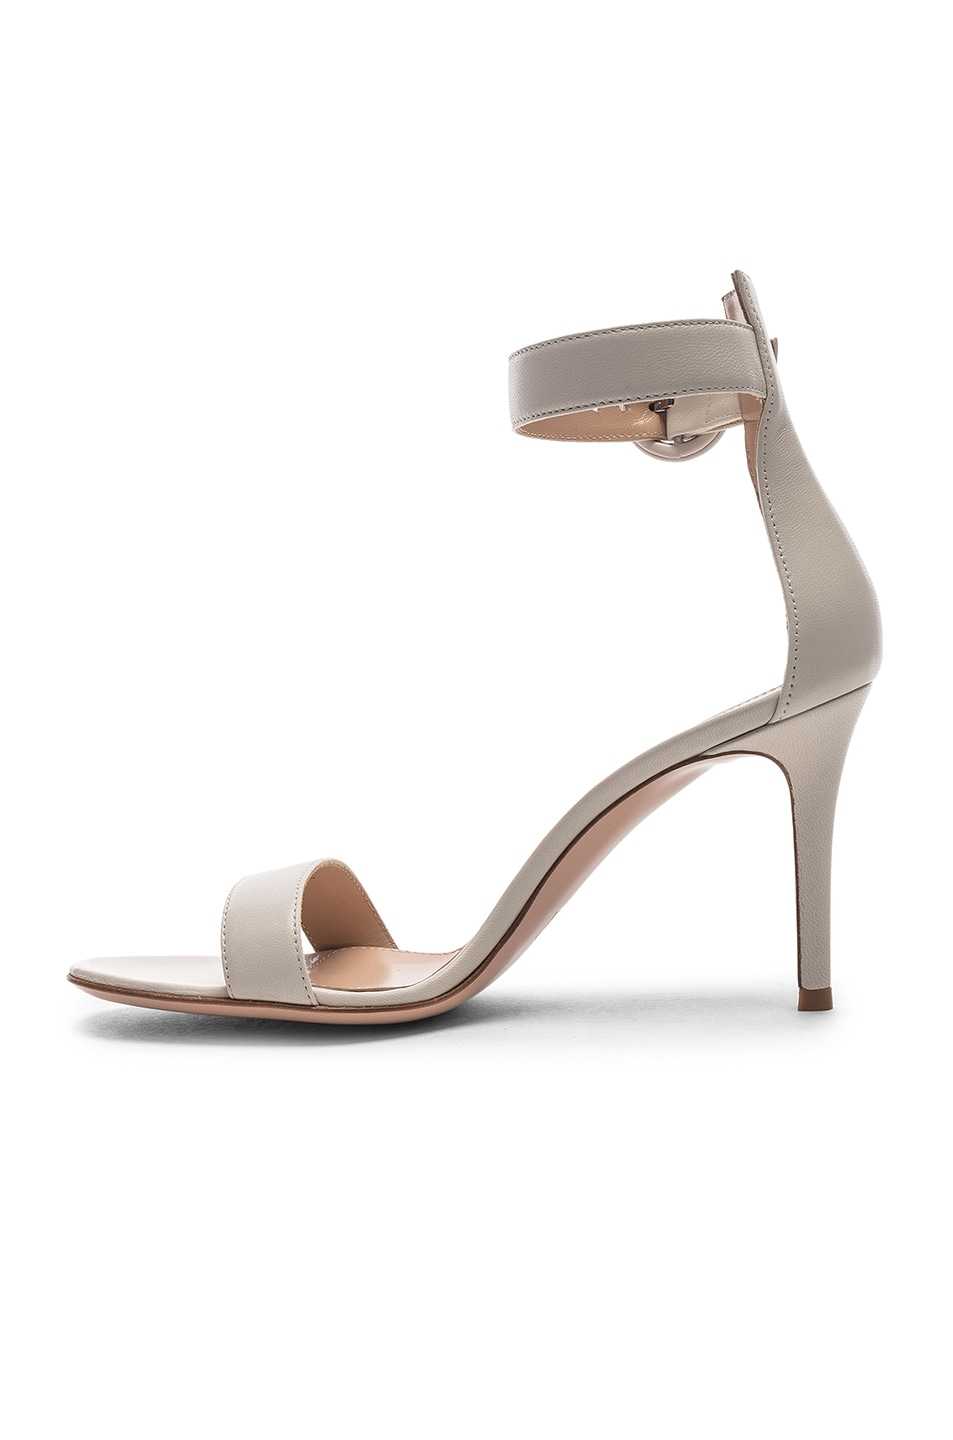 Image 5 of Gianvito Rossi Portofino Heels in Off White